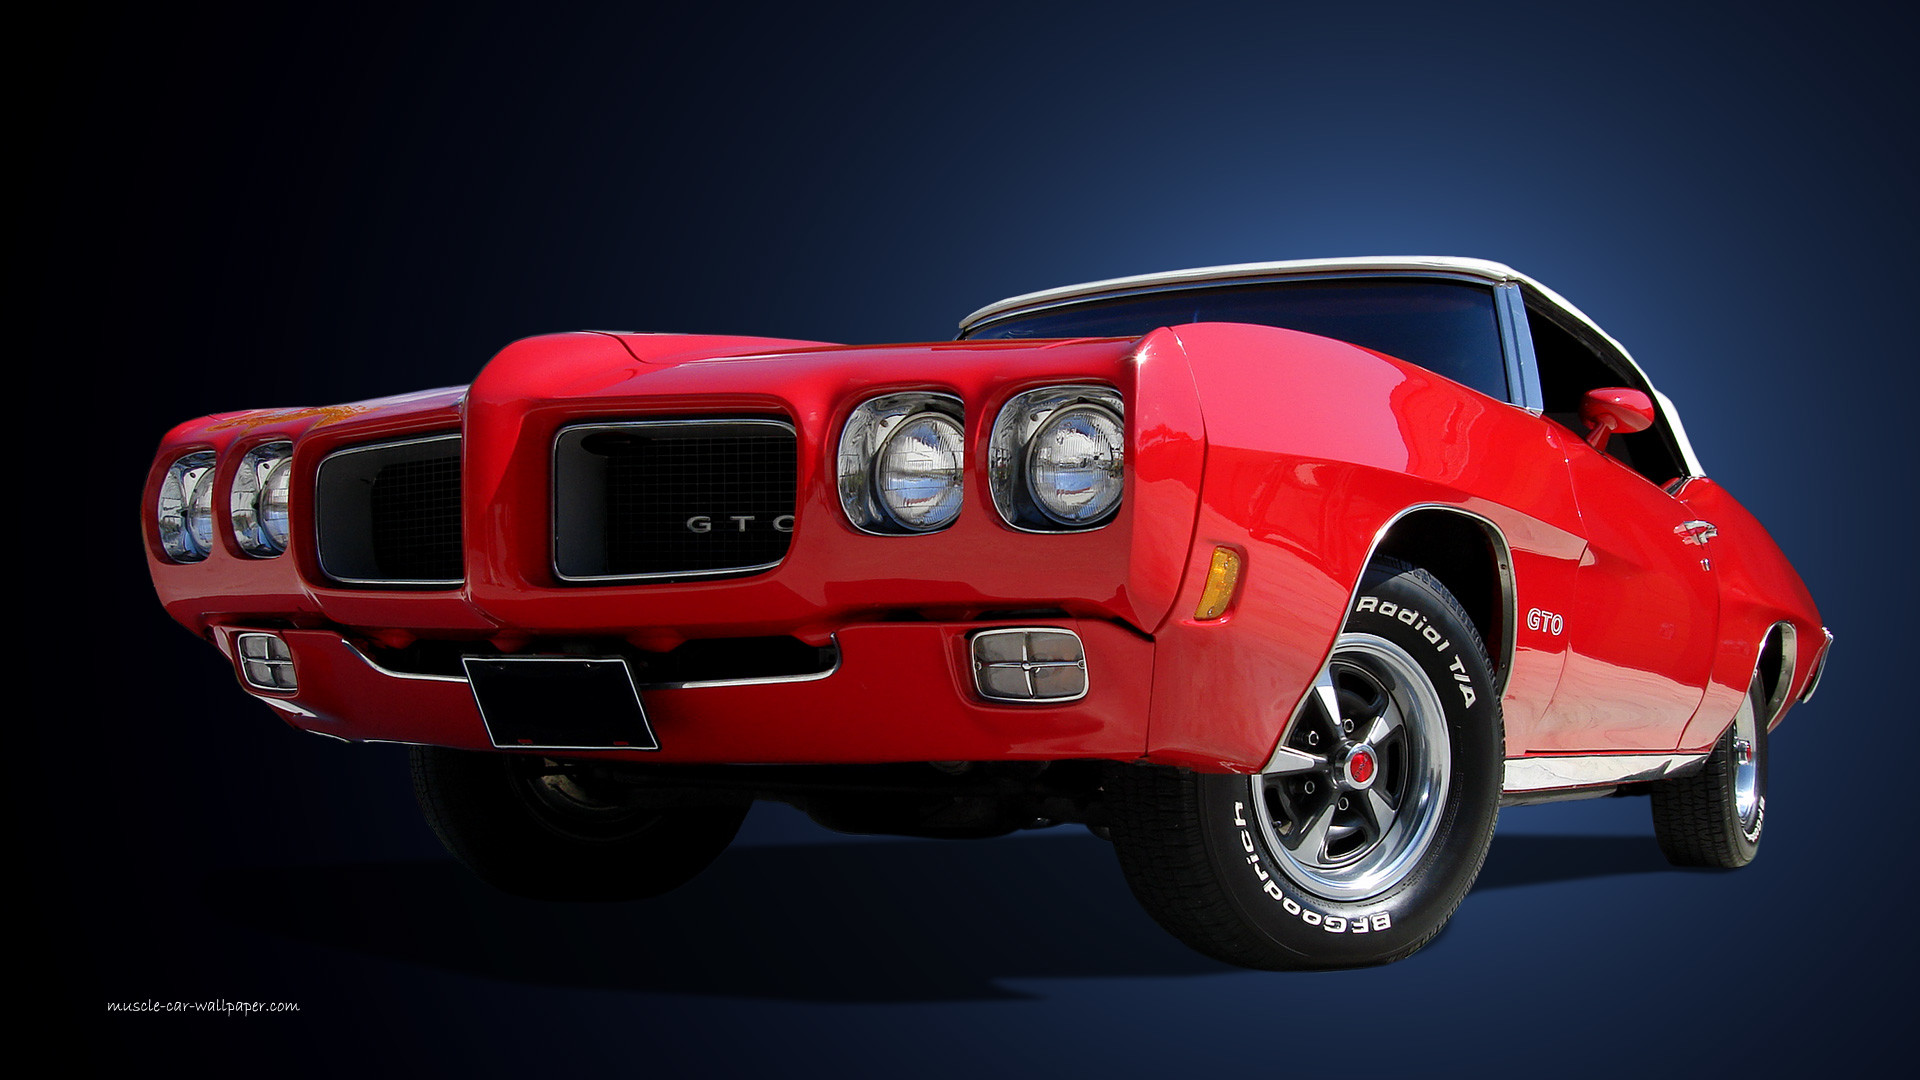 1920x1080 Pontiac GTO HD Wallpaper | Hintergrund |  | ID:124310 - Wallpaper  Abyss